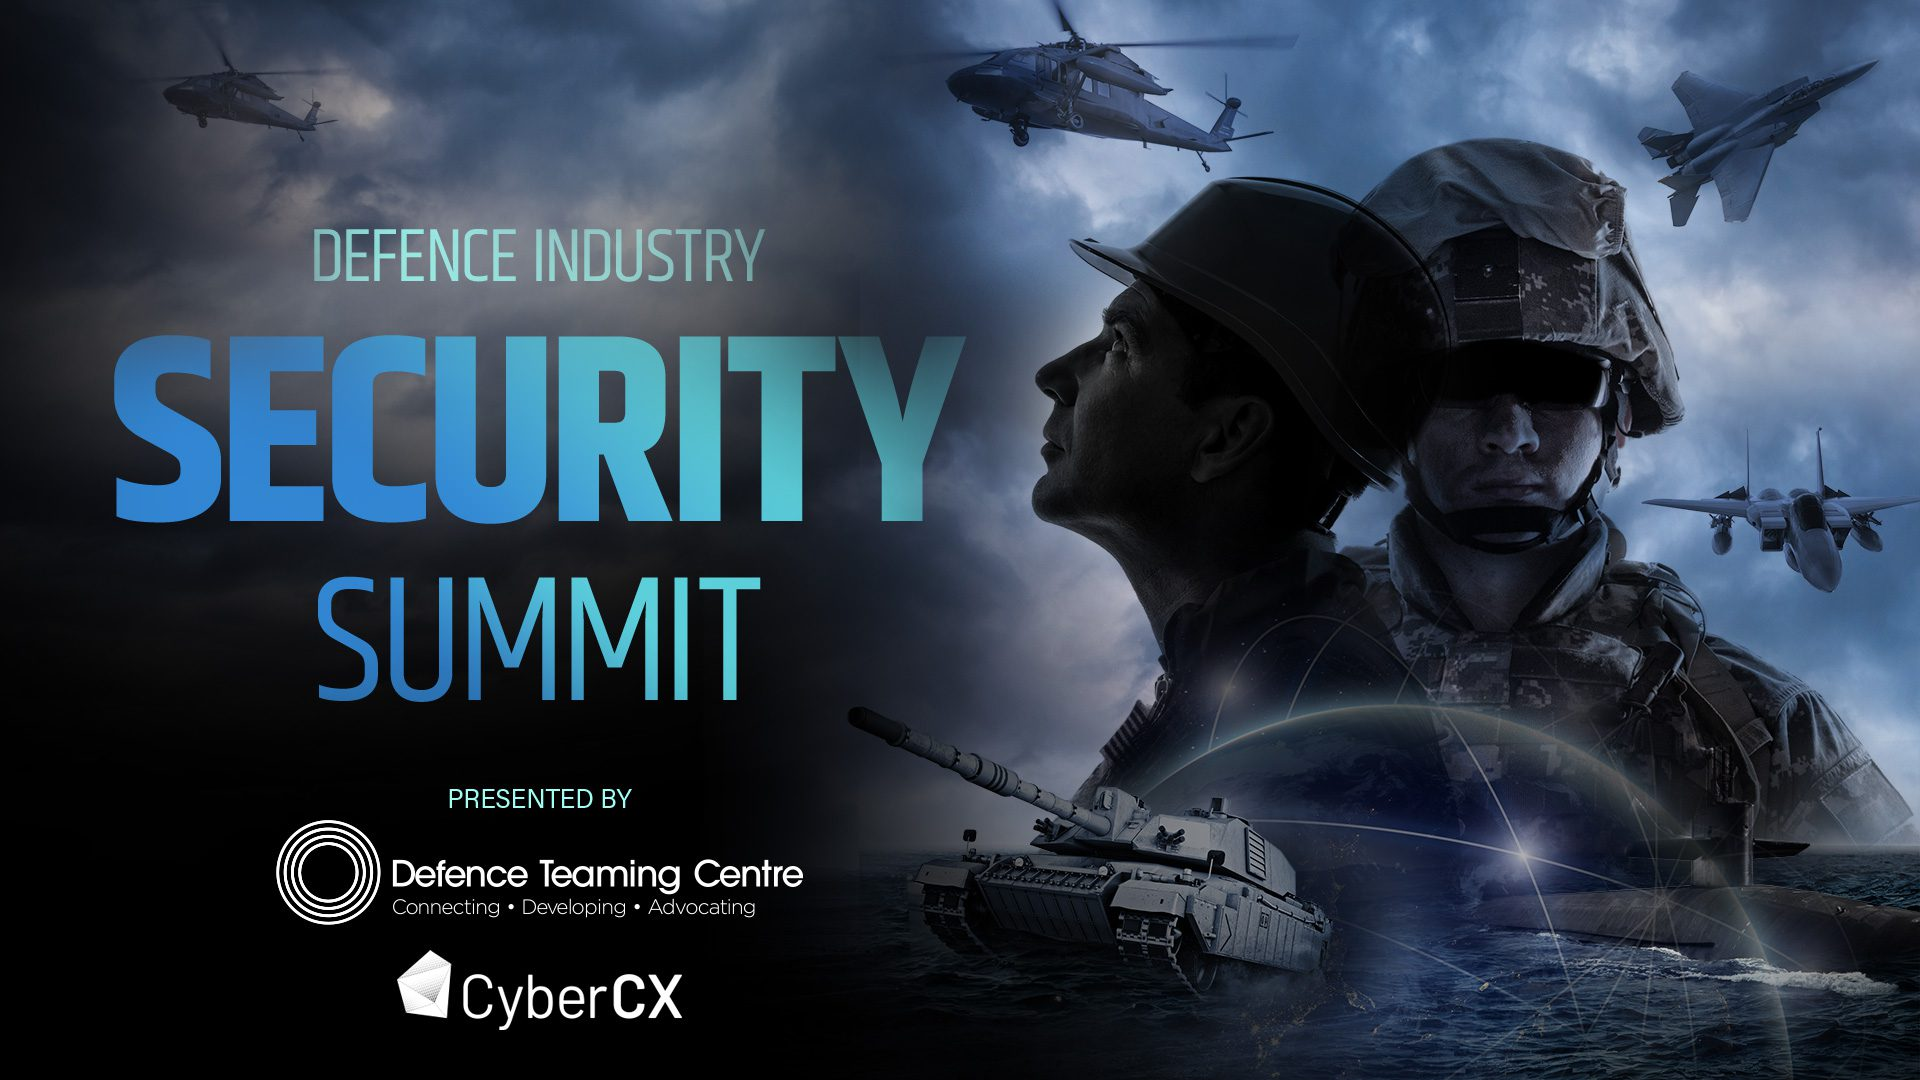 Defence Security Summit 2021